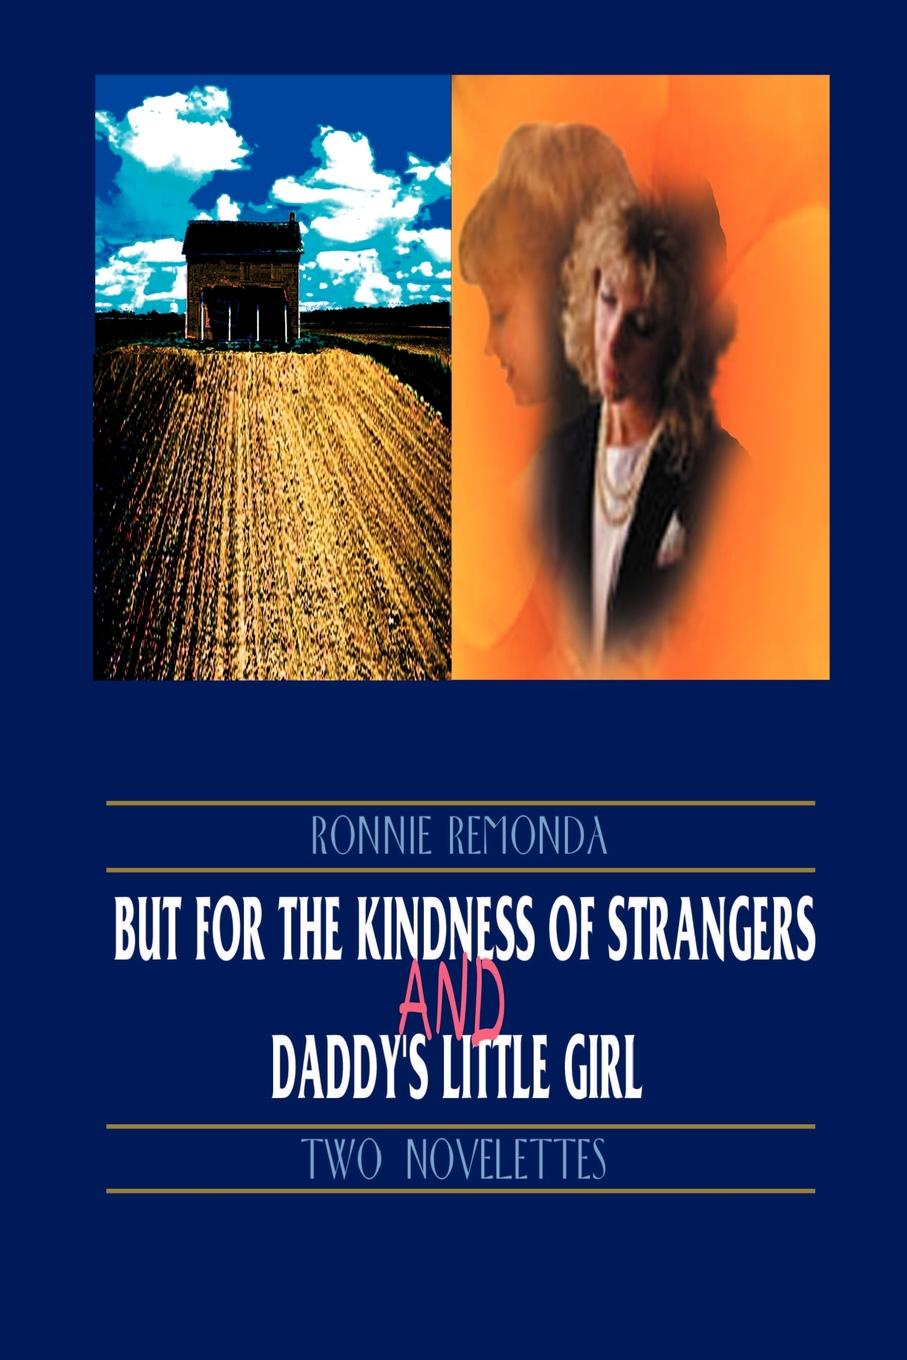 Ronnie Remonda But for the Kindness of Strangers and Daddy's Little Girl. Two Novelettes for the love of strangers